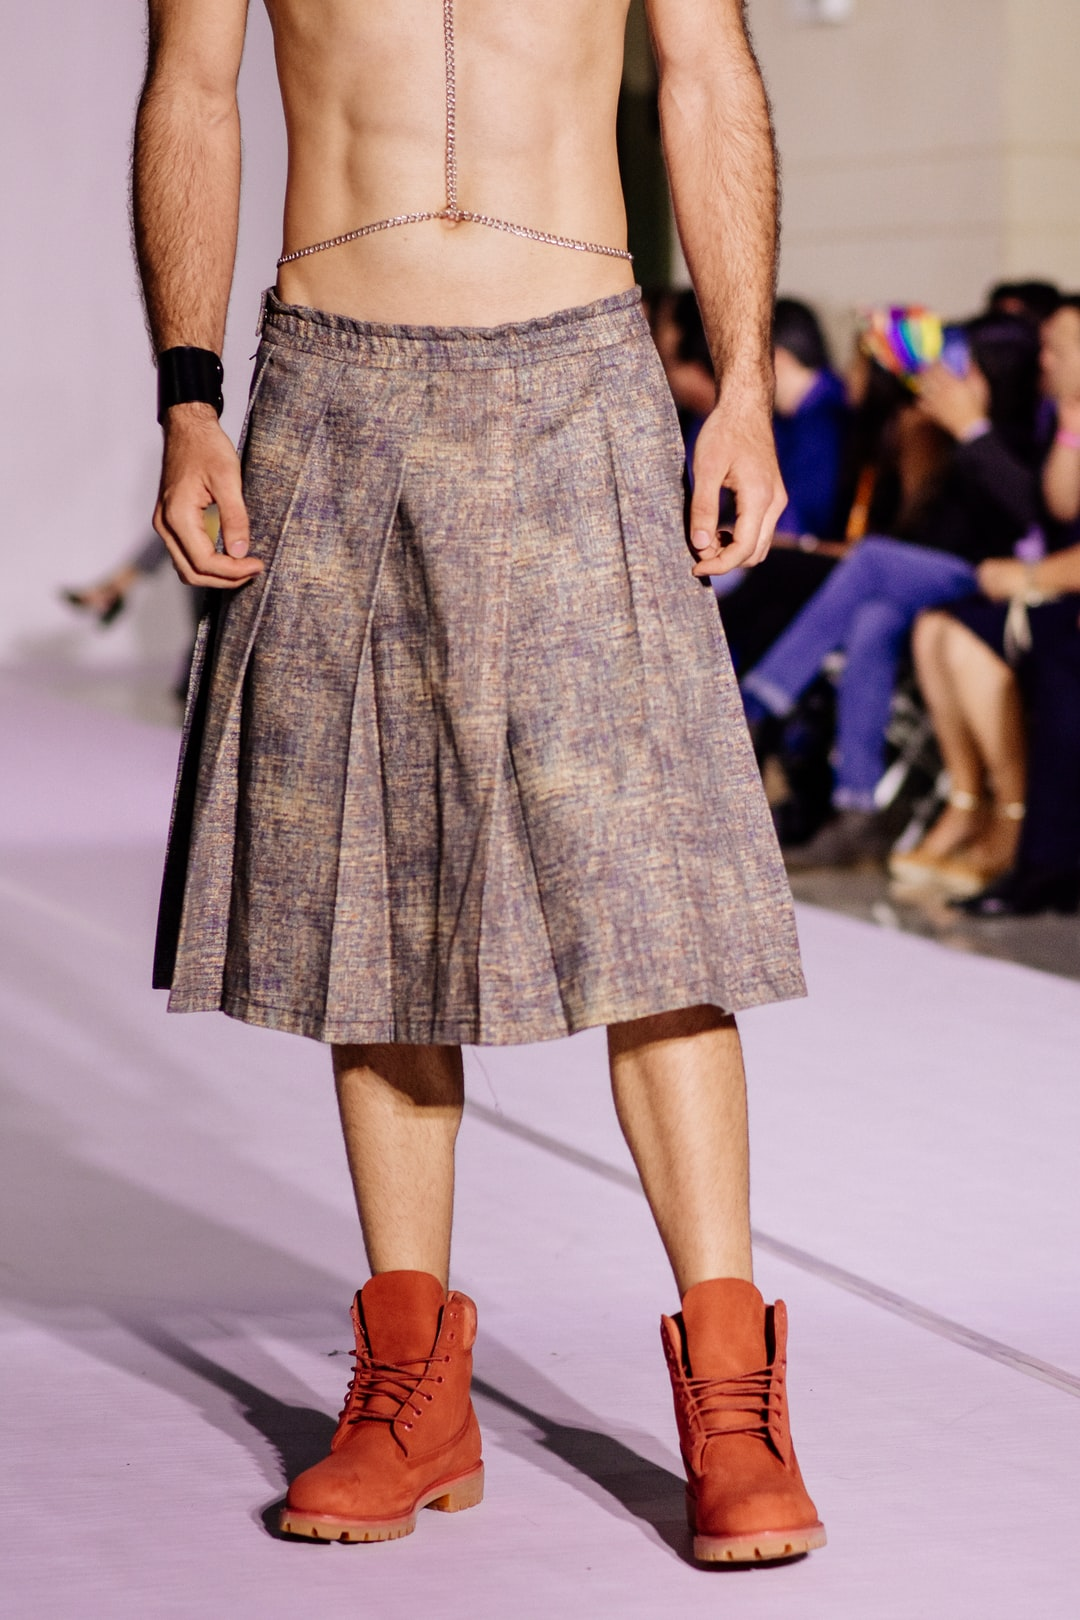 Male skirt fashion week with red boots trends new york